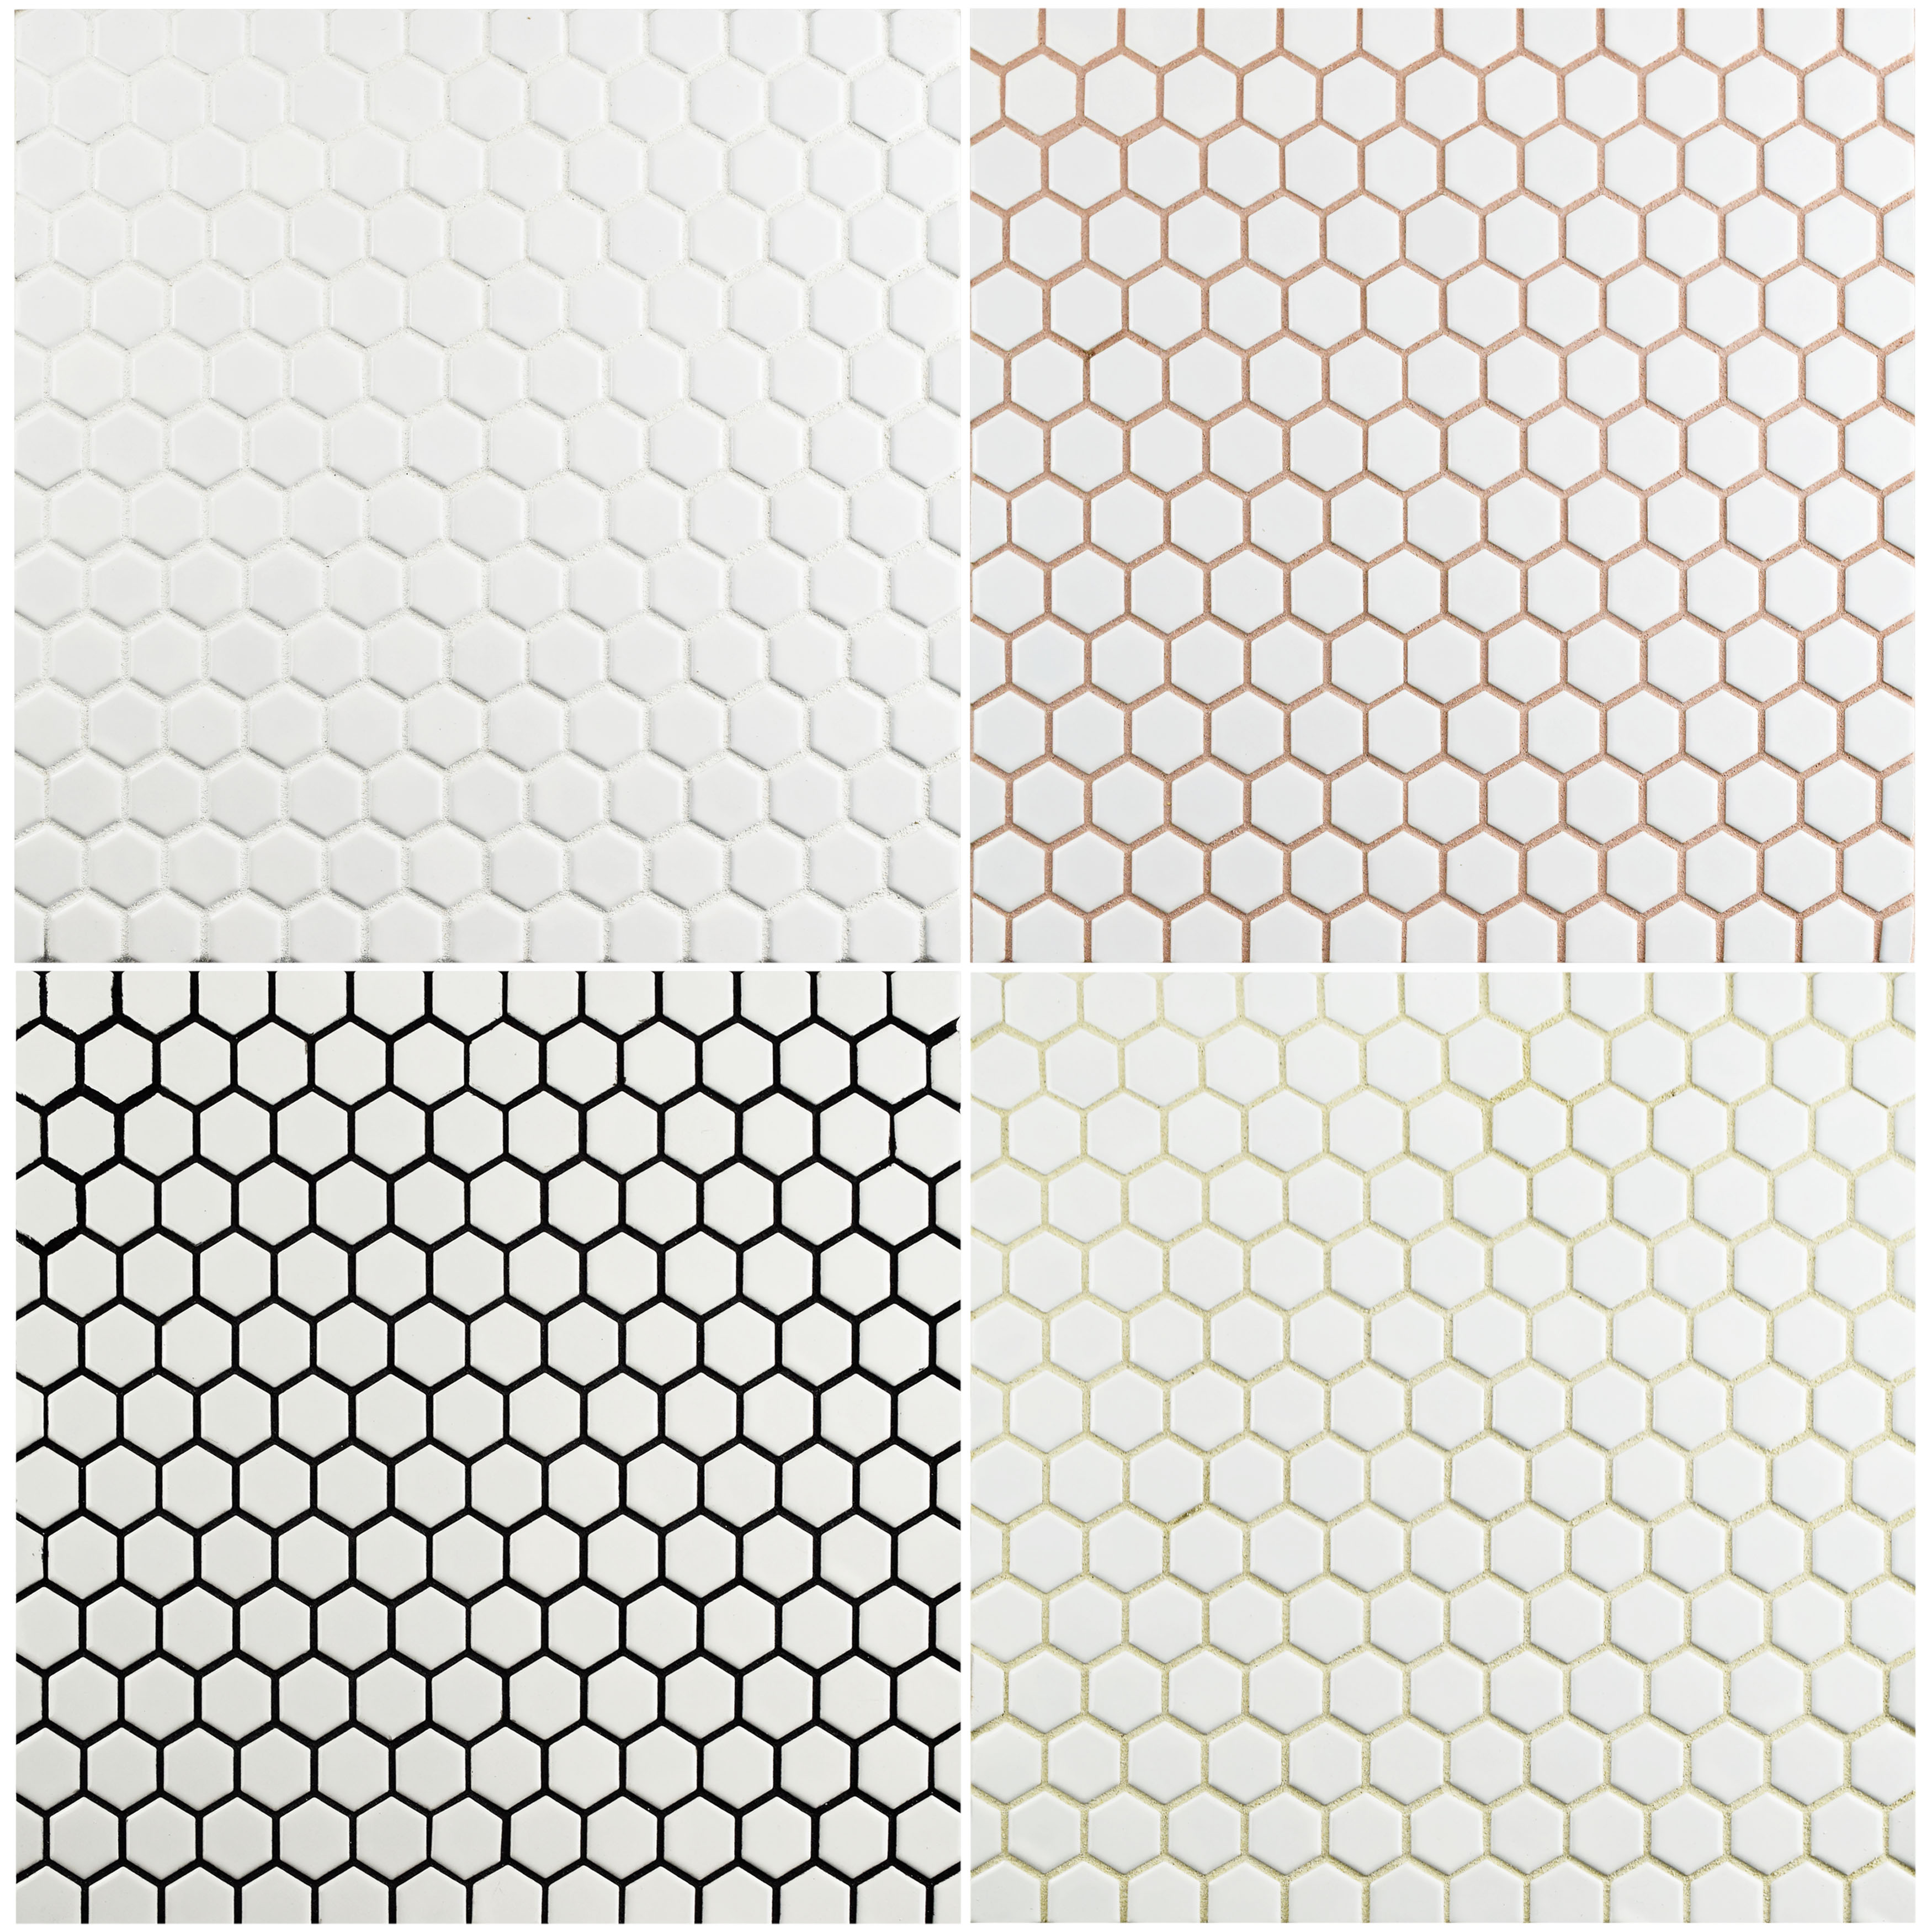 Grout Mosaic Tile Be All About Grout Merola Tile